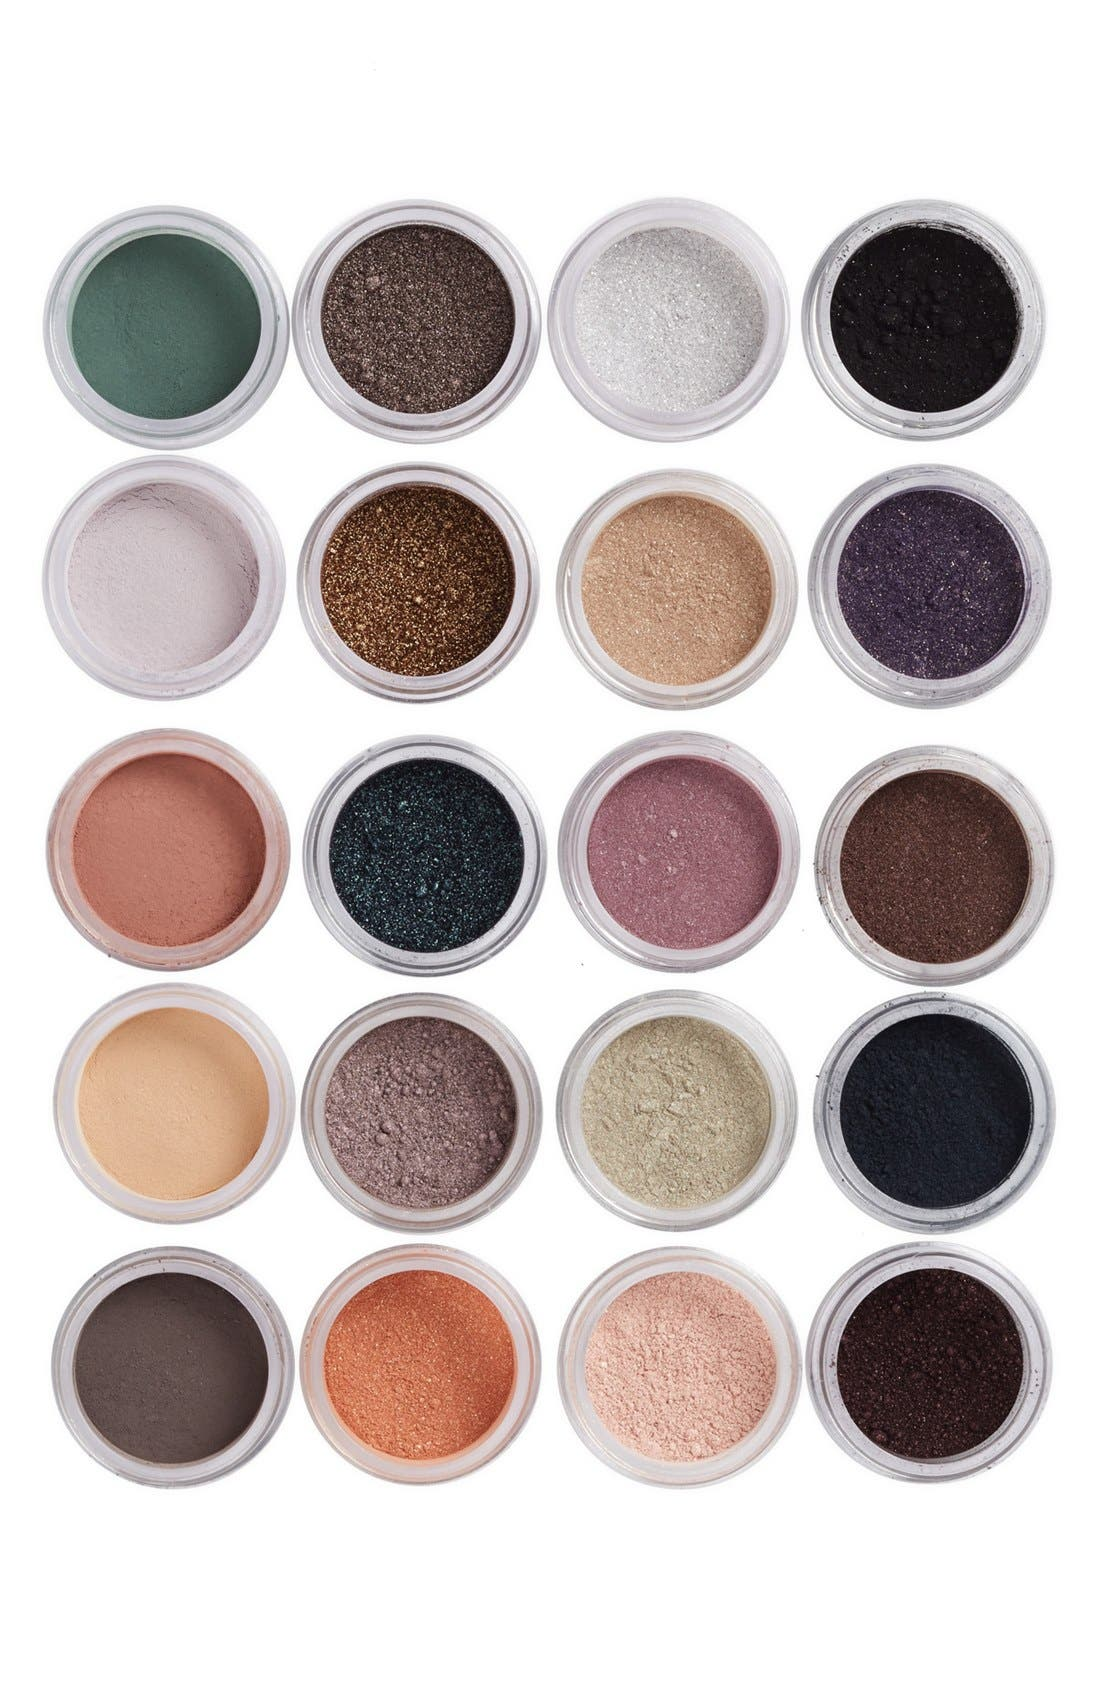 Main Image - bareMinerals® 'Degrees of Dazzling' Eyeshadow Palette ($220 Value)